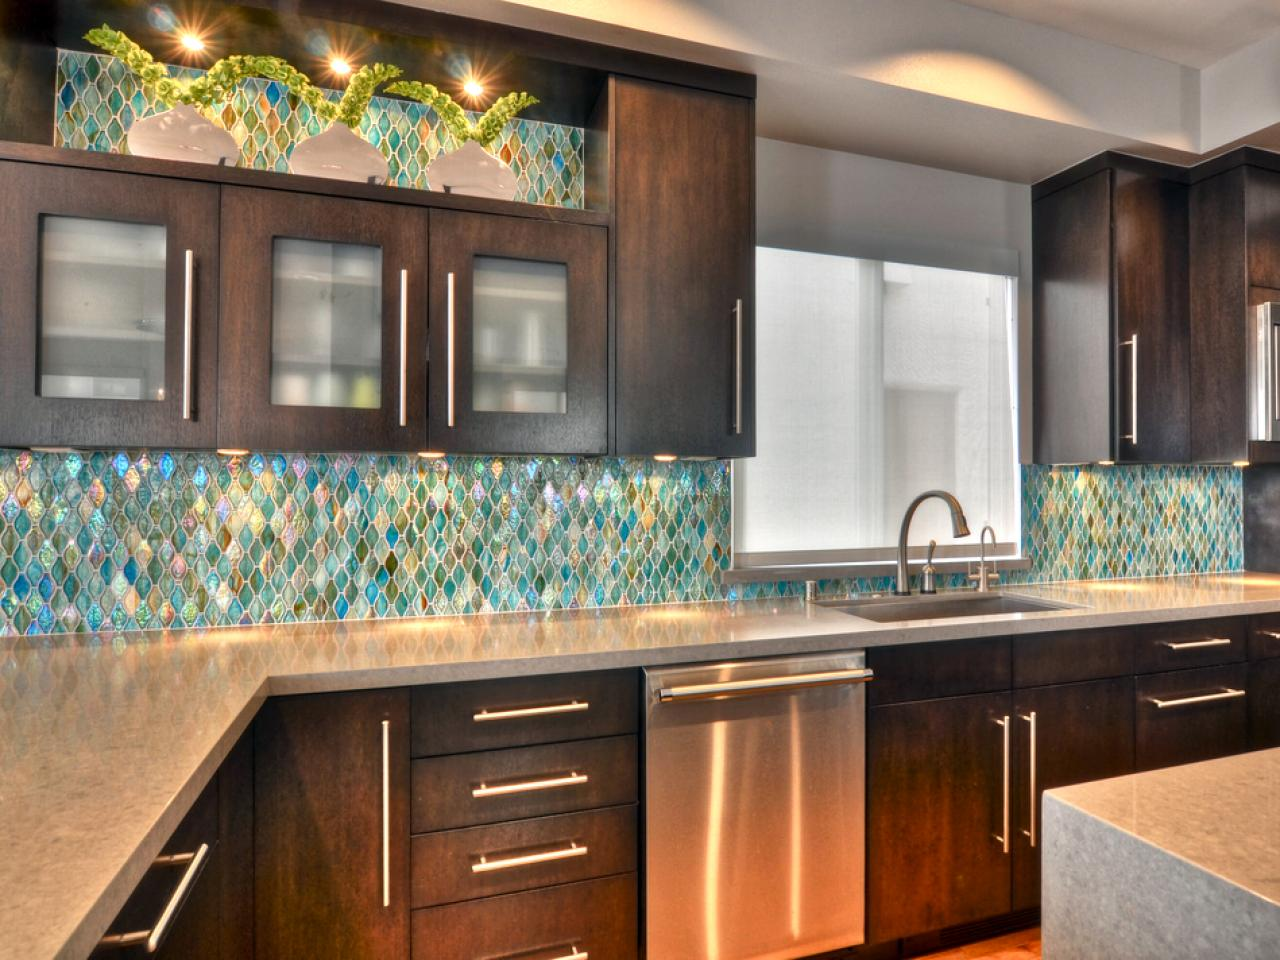 Amazing Glass Tile Kitchen Backsplash.